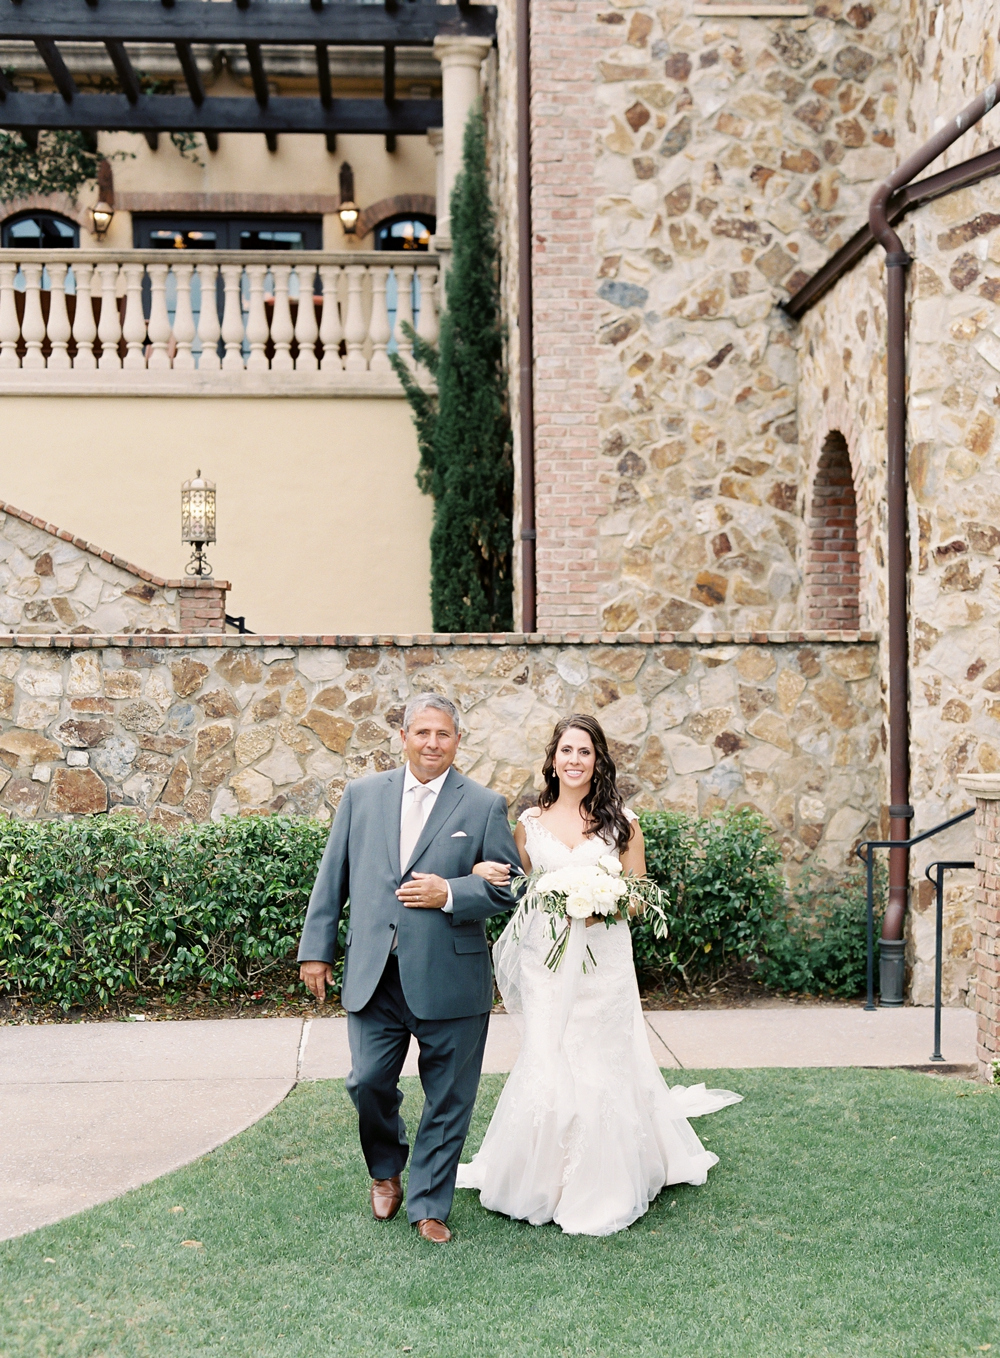 Vicki Grafton Photography - Fine Art Film Wedding Photographer - Bella Collina Wedding_0050.jpg